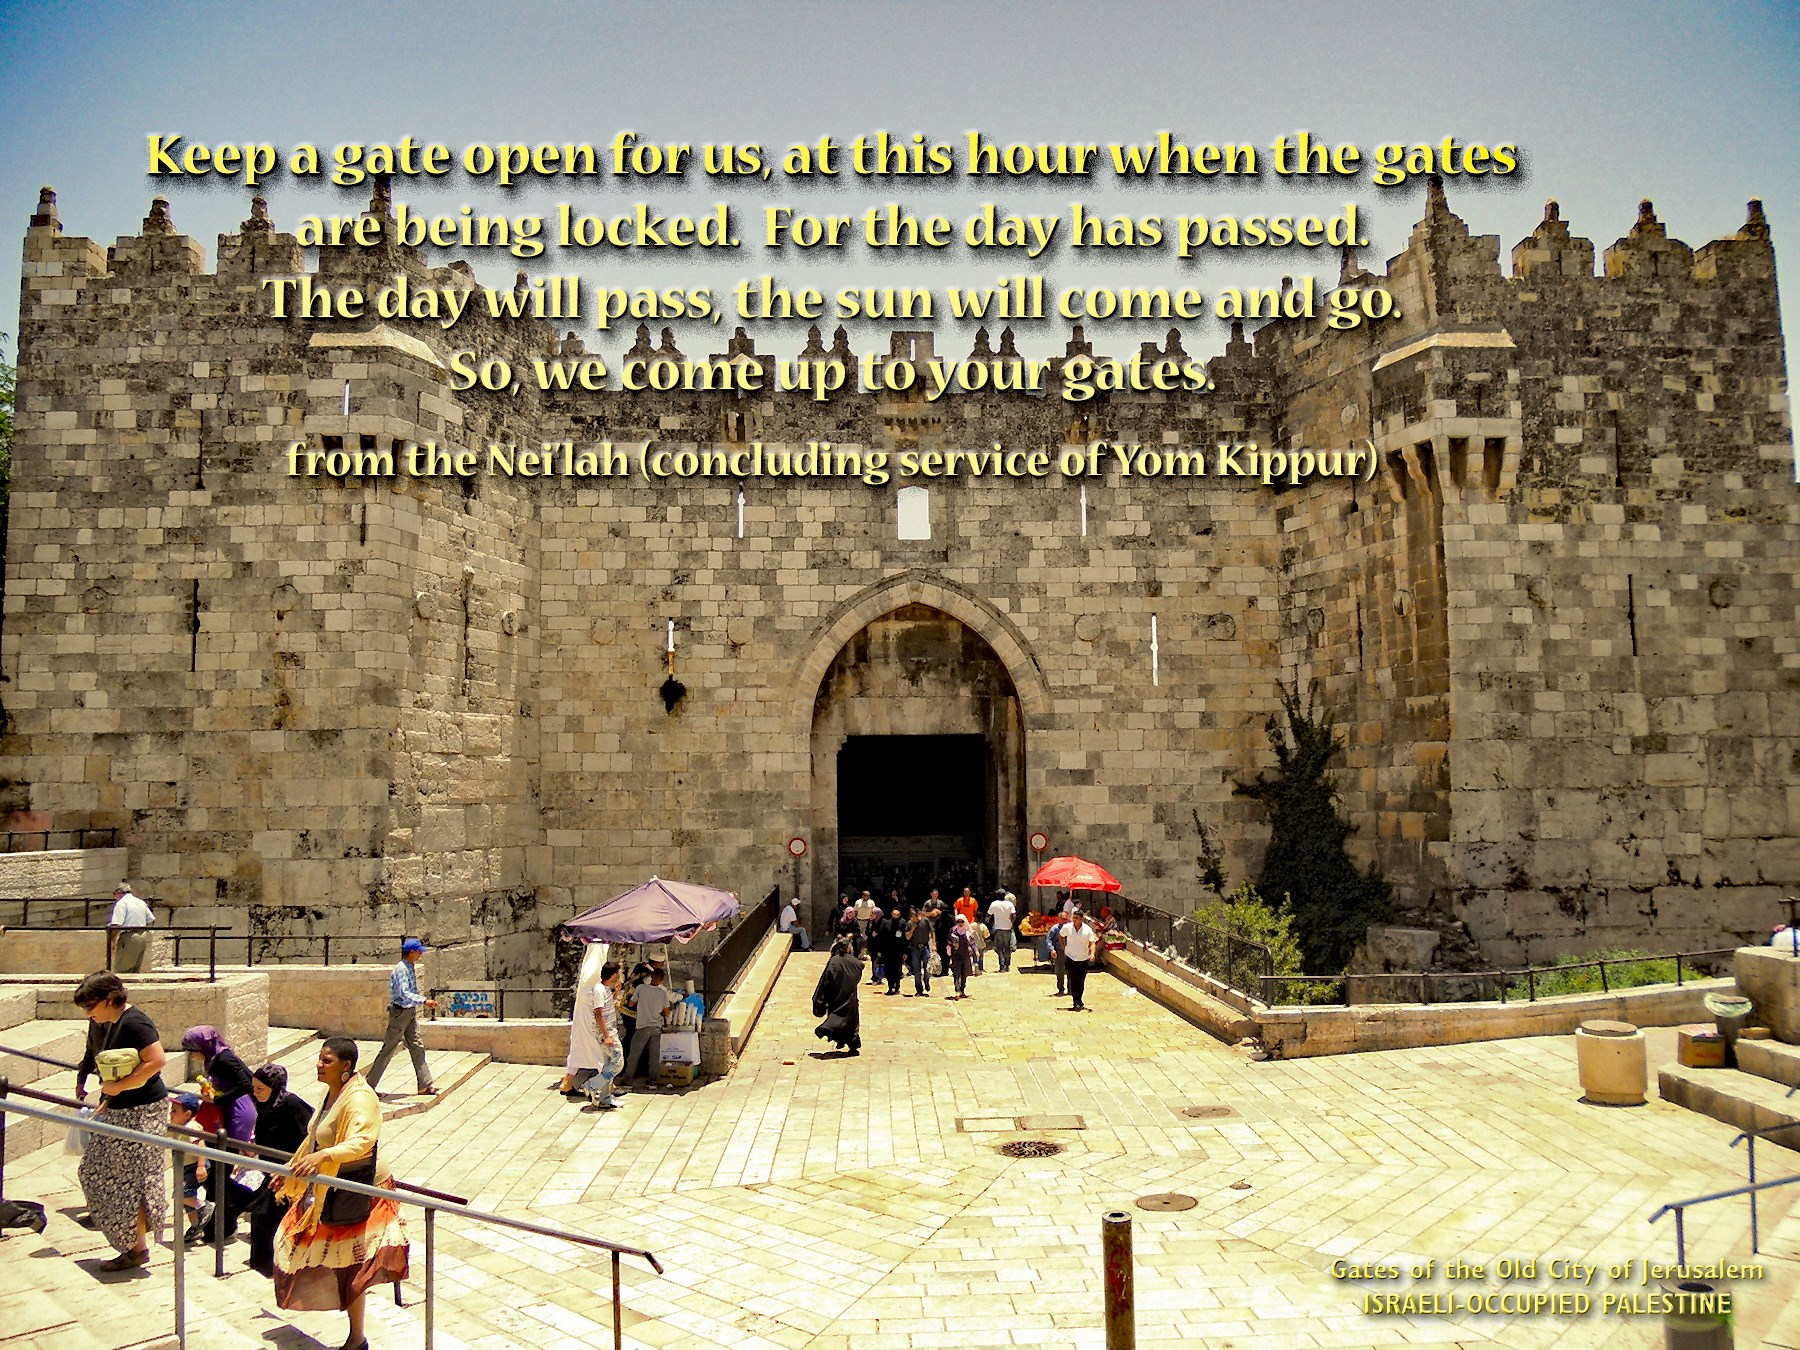 00-jerusalem-old-city-gates-01-yom-kippur-111016